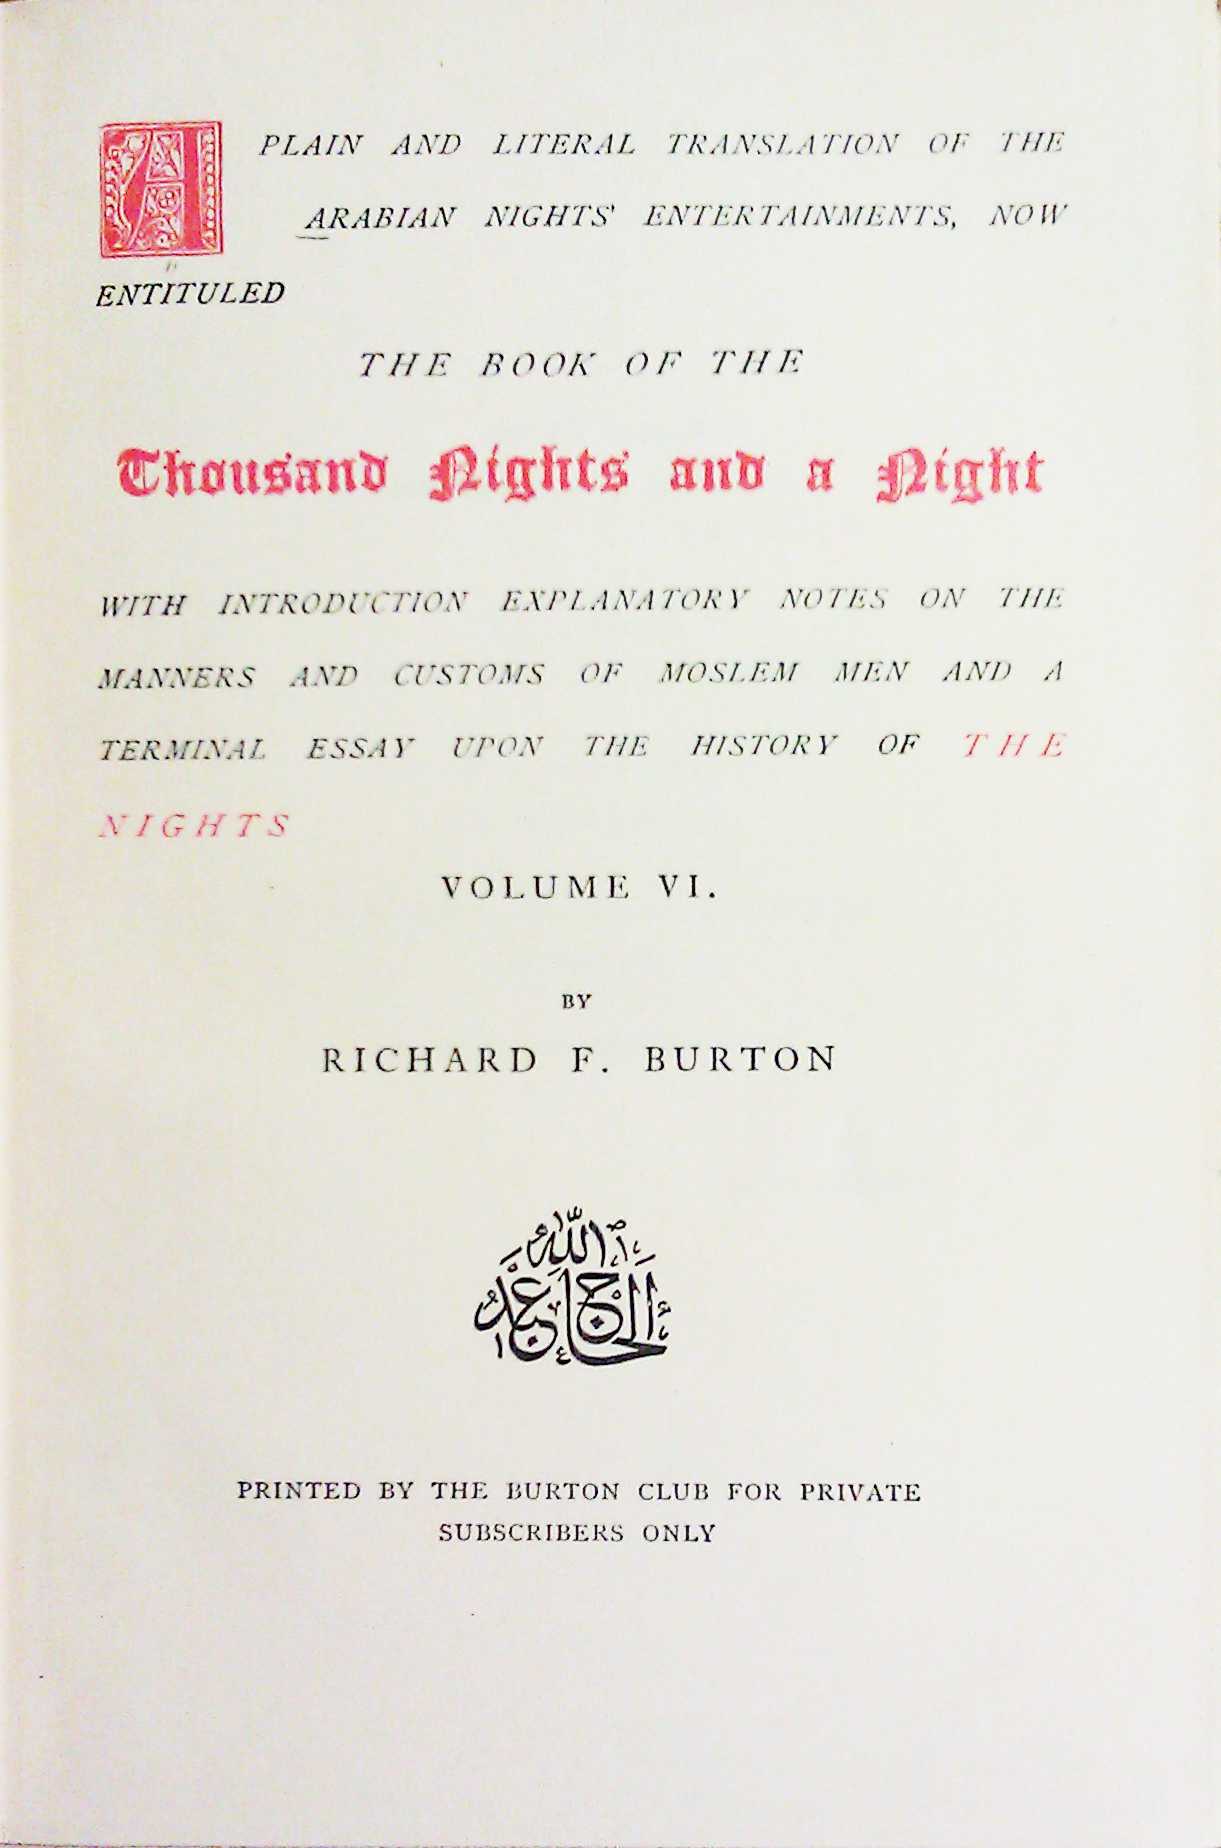 an analysis of sex in arabian nights translated by richard burton In richard burton's translation of arabian nights, several stories revolve around three ideas sex, lies, and violence it seems that one idea hinges on another and.